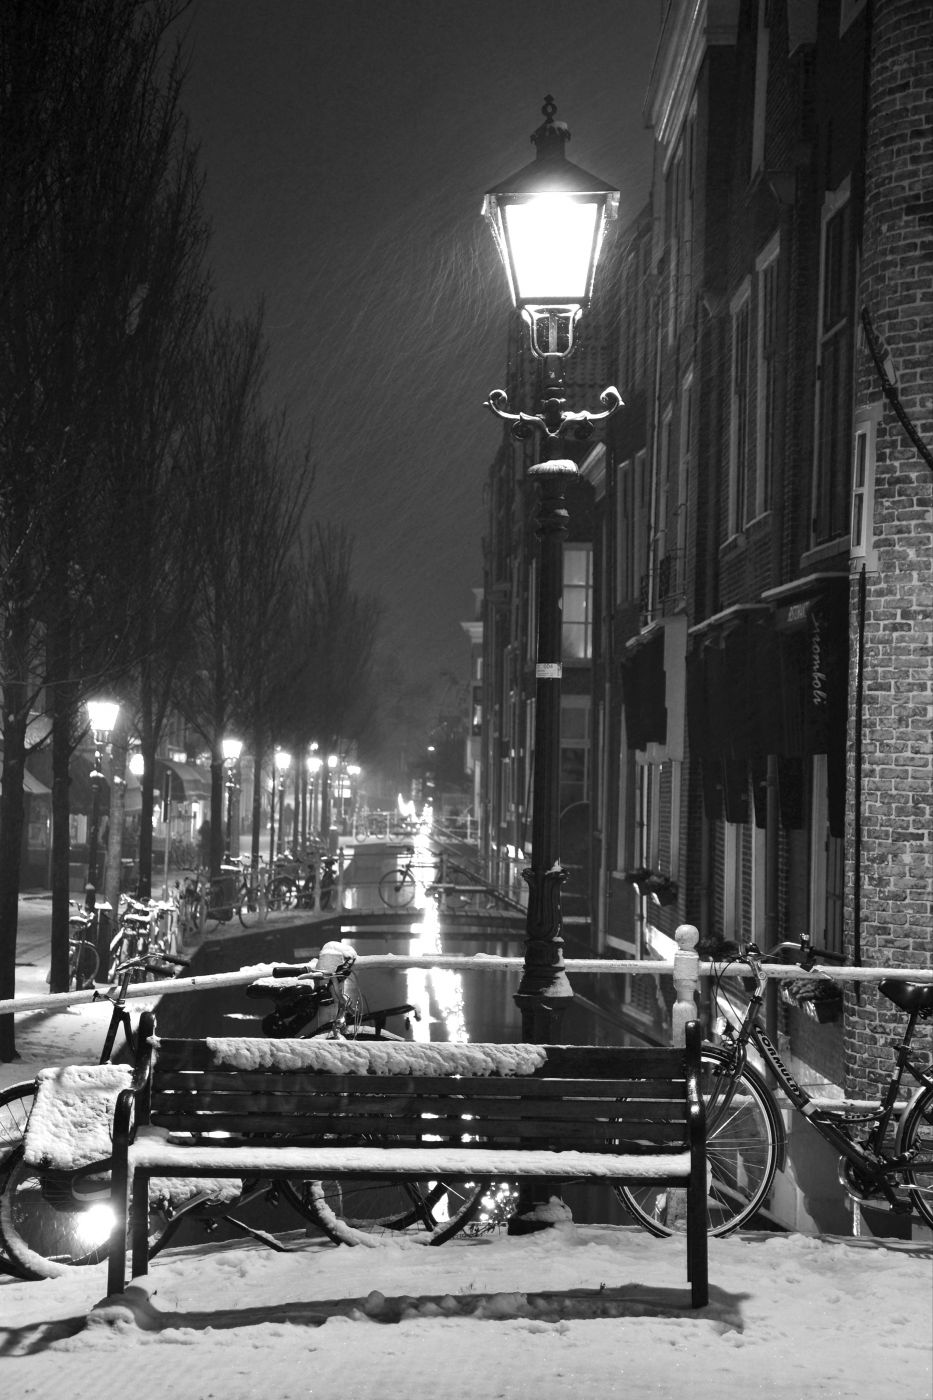 Winter in Delft, Netherlands